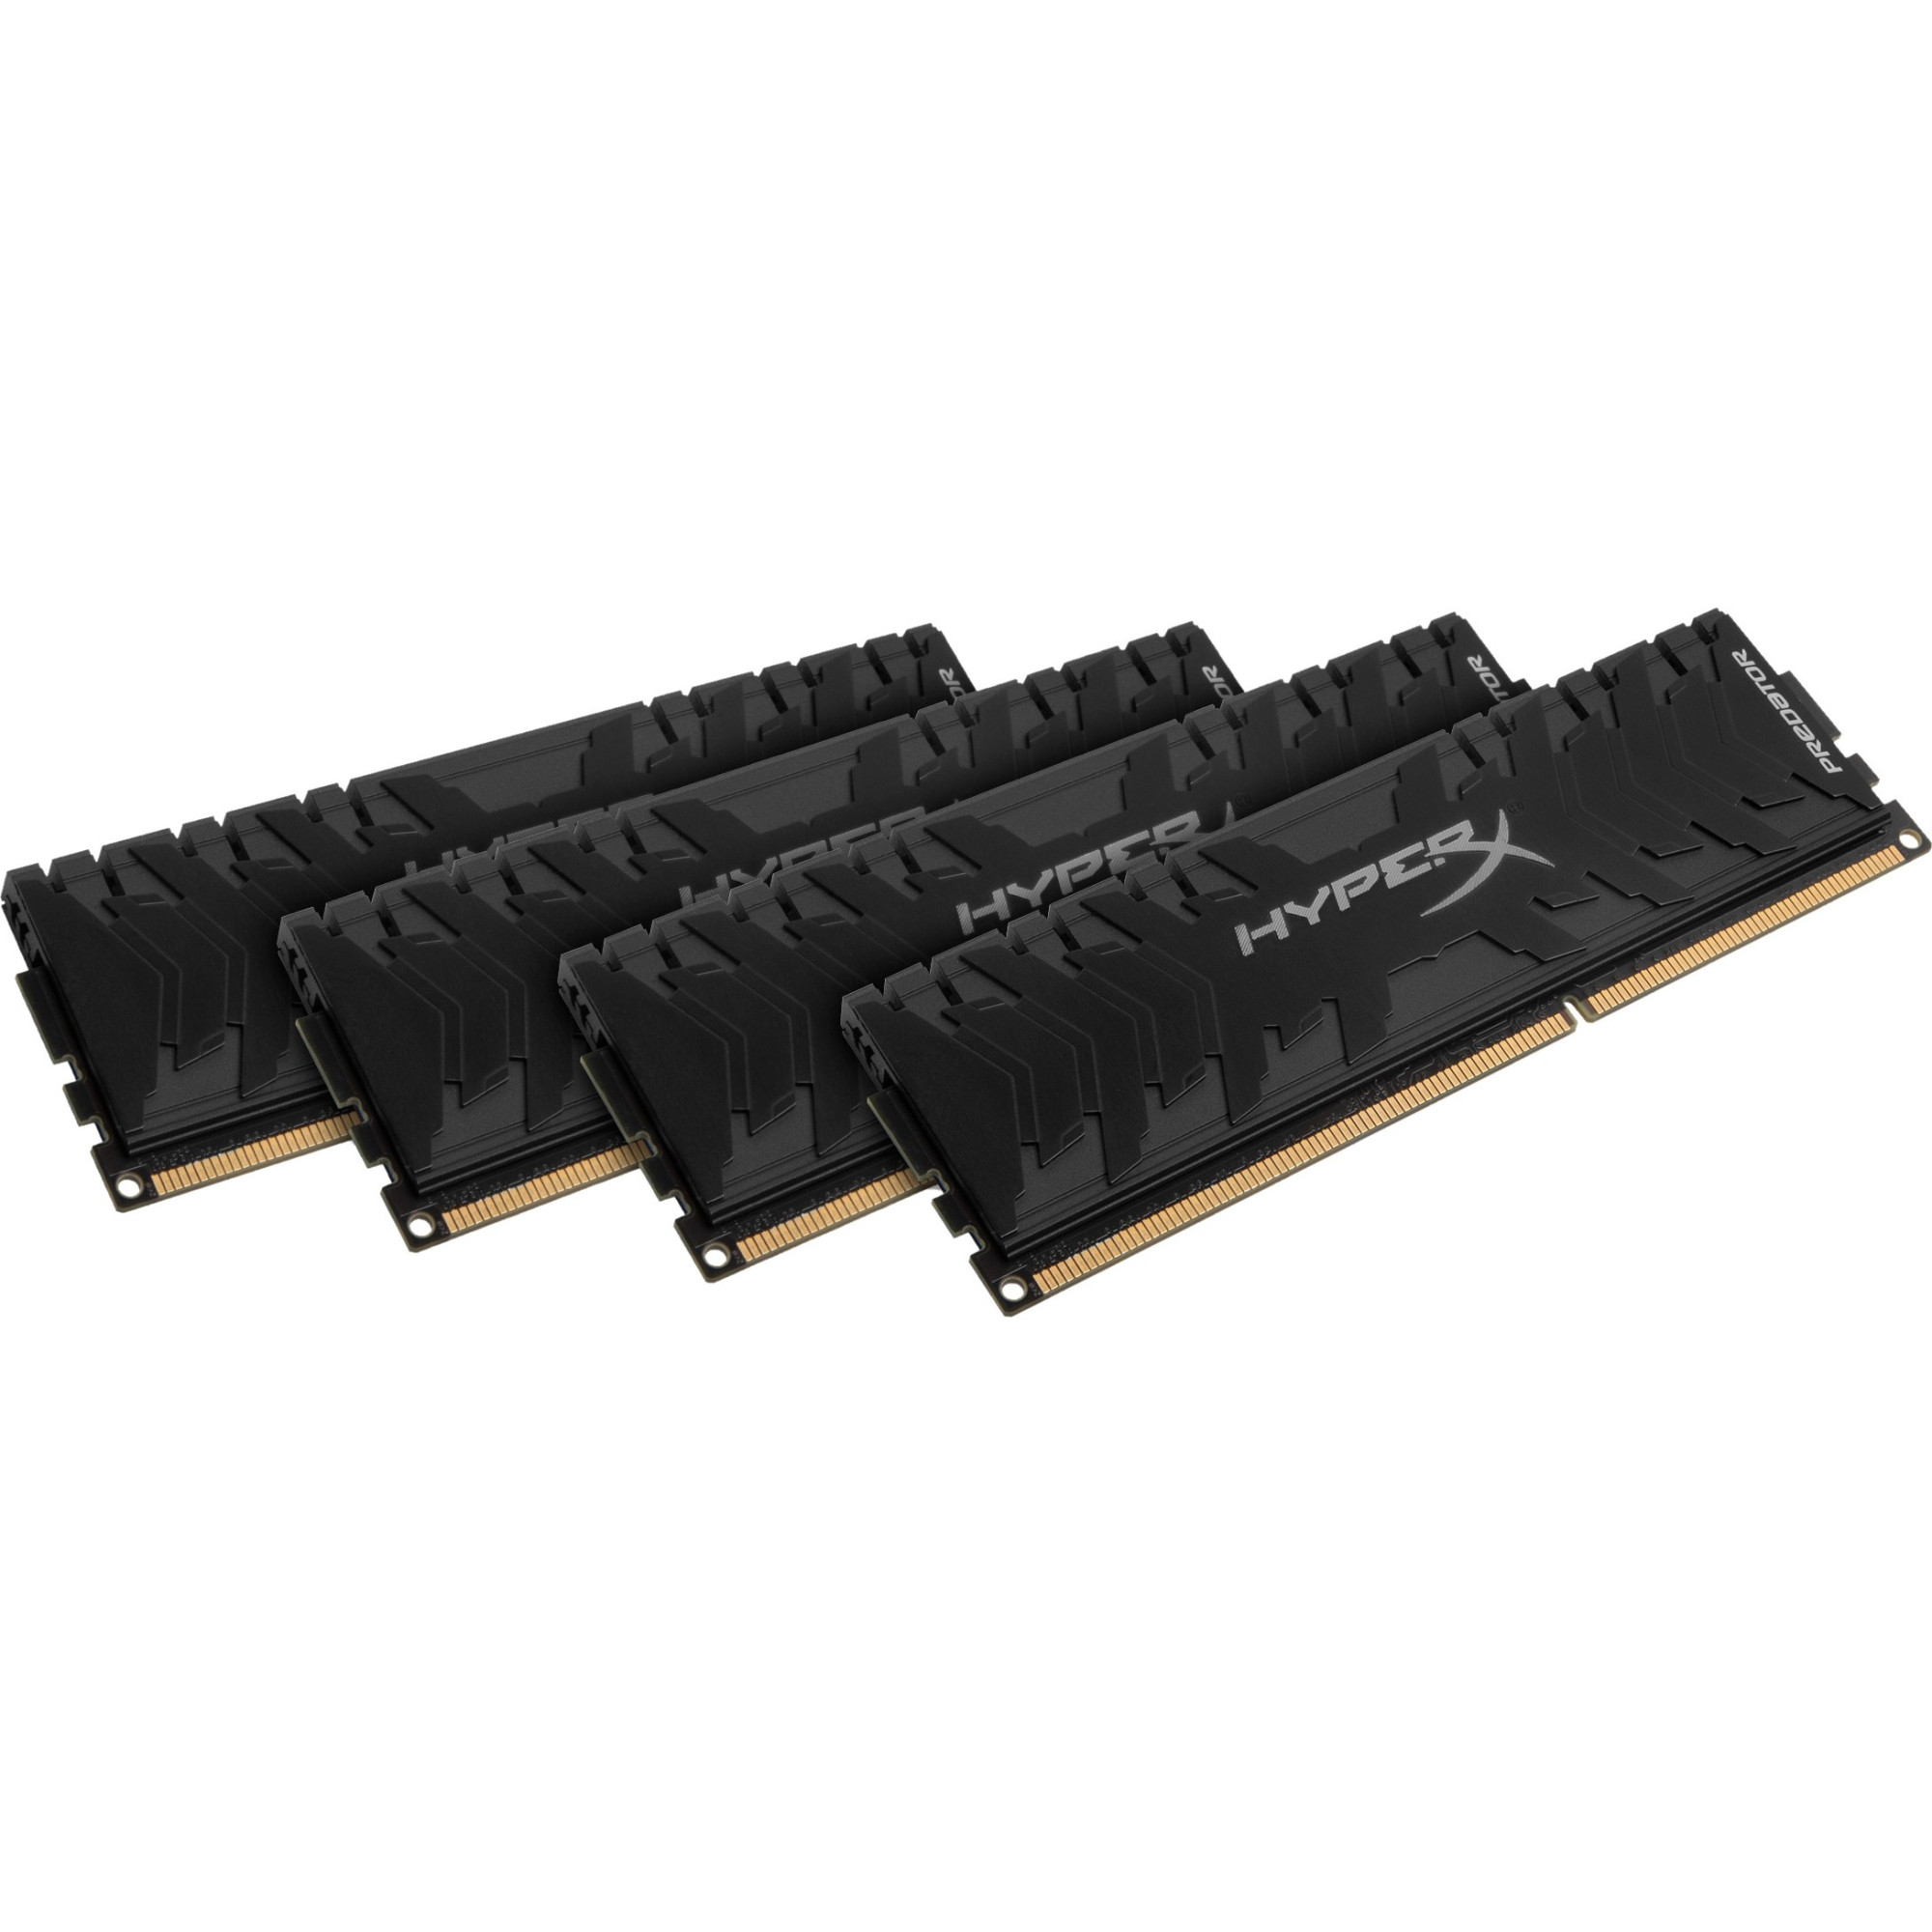 Kingston Predator Memory Black - 32GB Kit (4x8GB) - DDR3 1866MHz CL9 DIMM - 32 GB (4 x 8 GB) - DDR3 SDRAM - 1866 MHz D